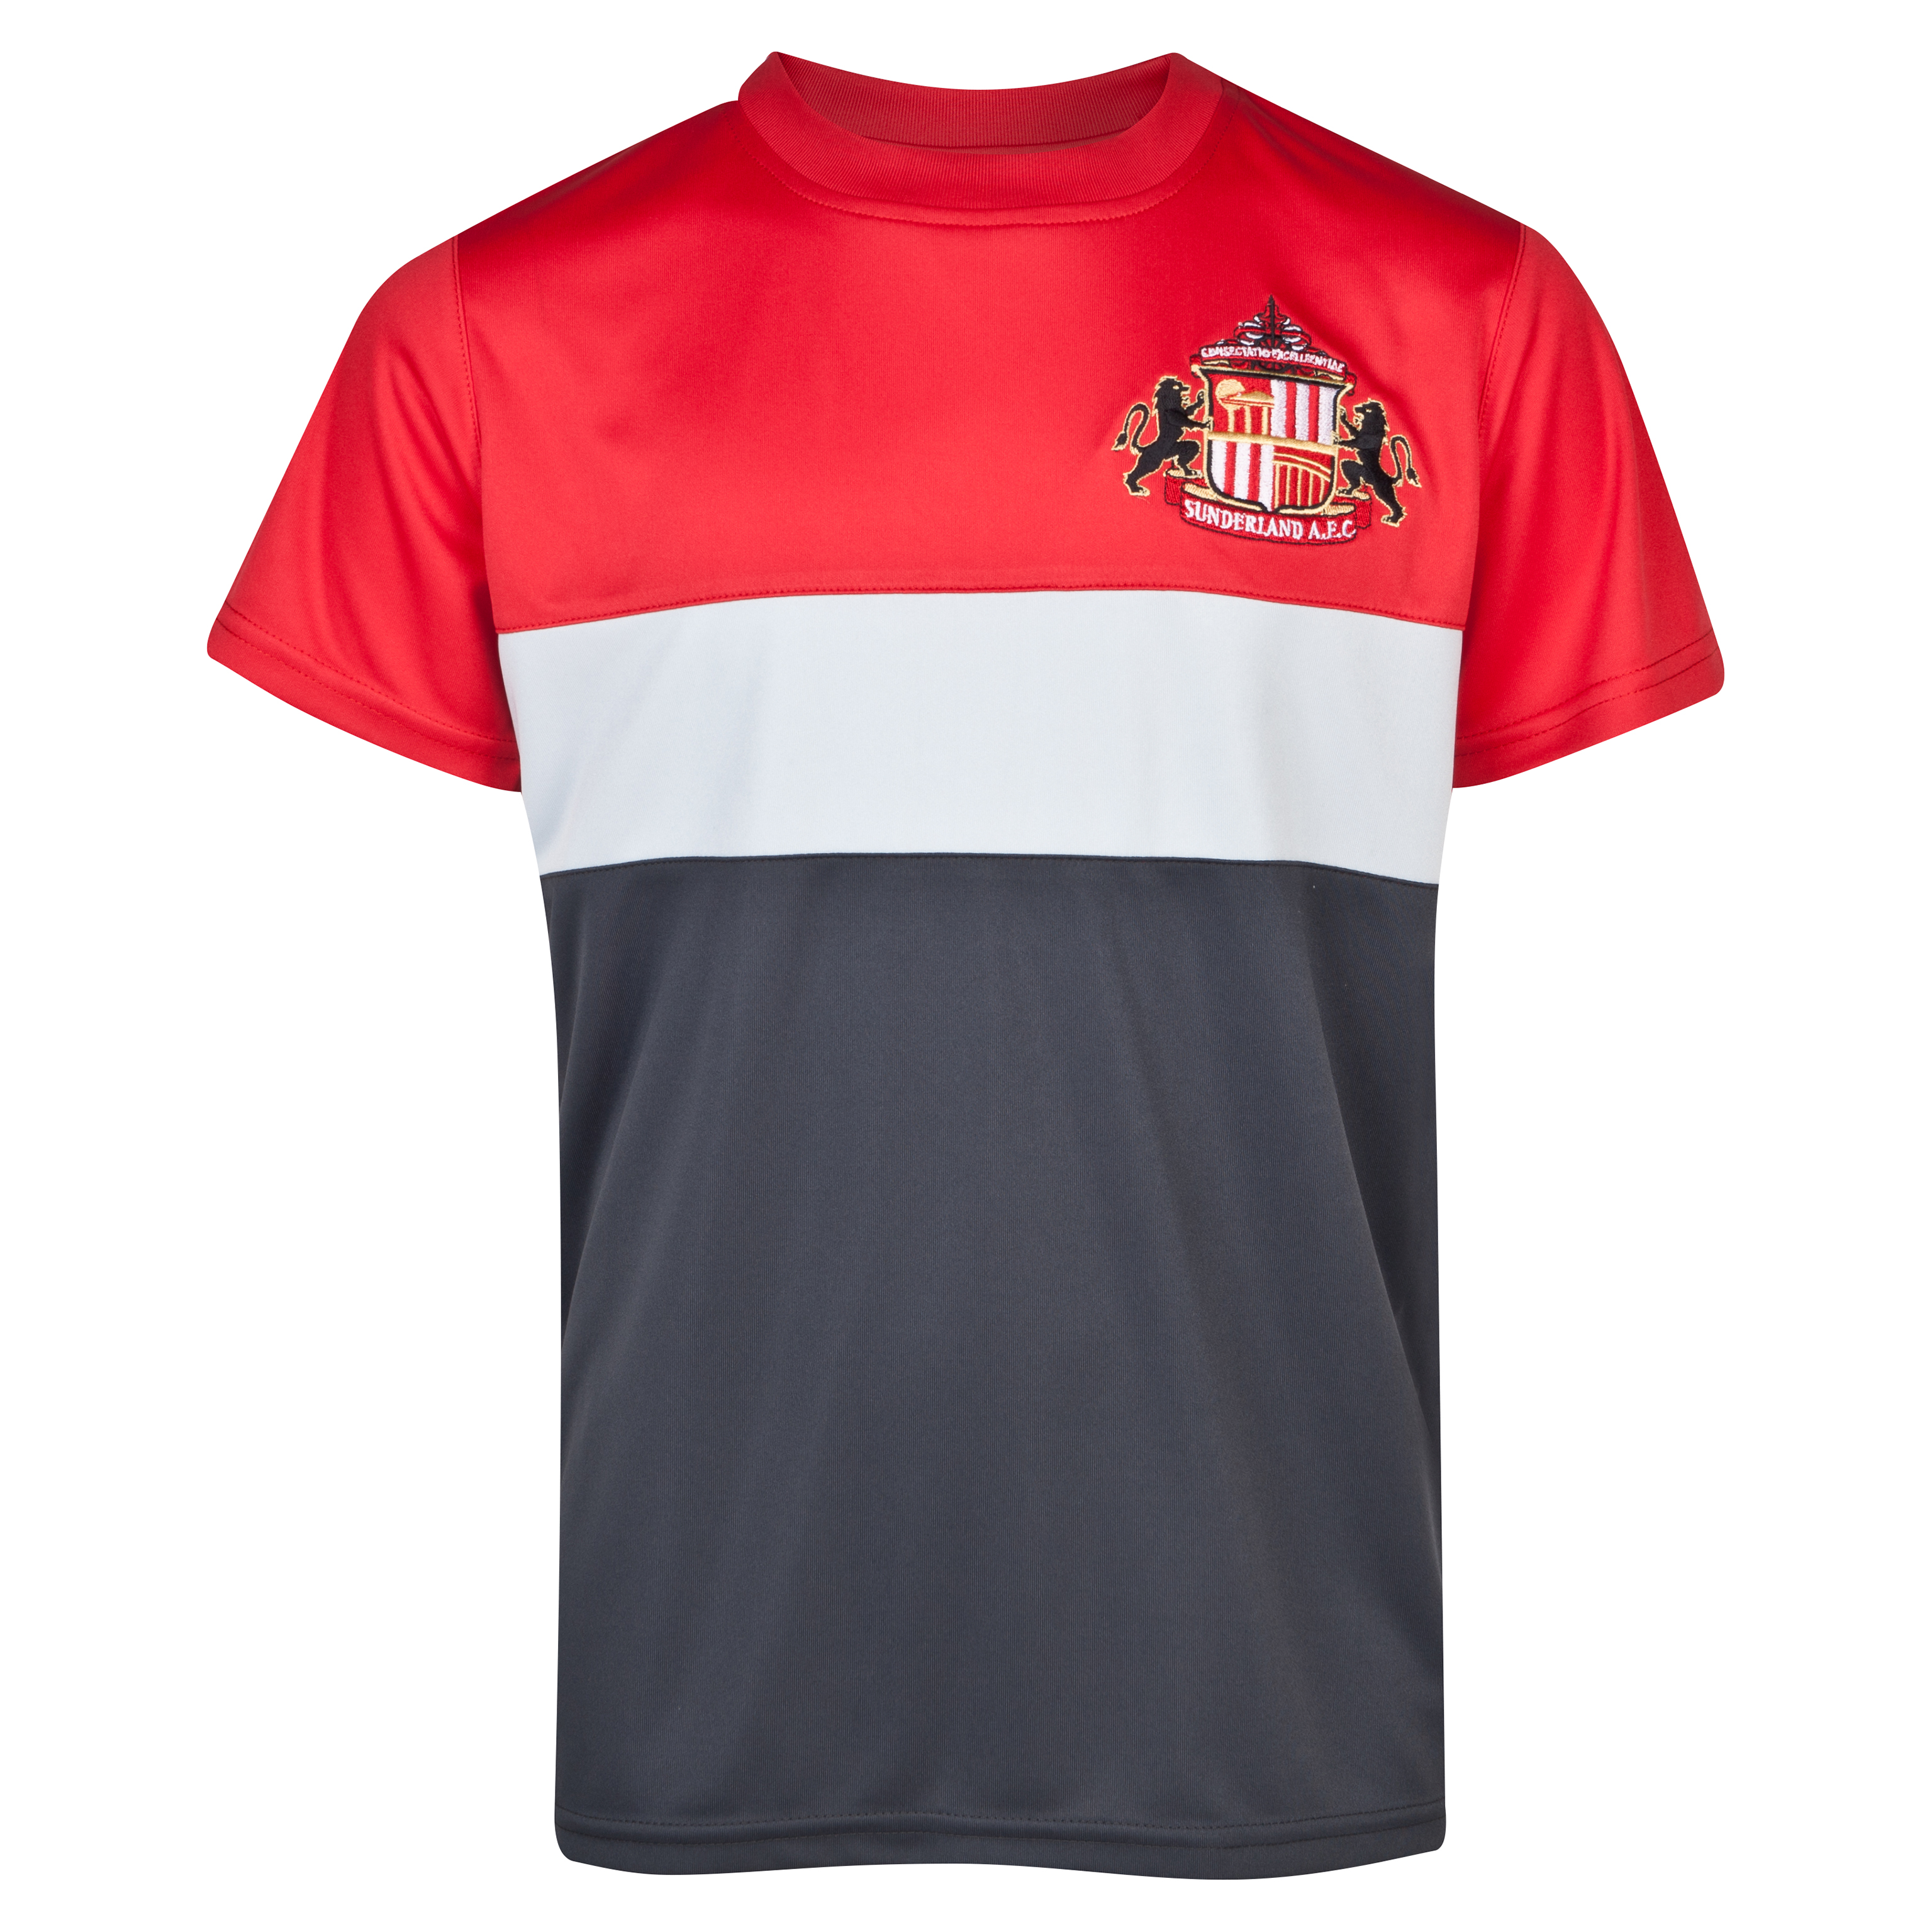 Sunderland Essentials Tiers T-Shirt - Older Boys Red